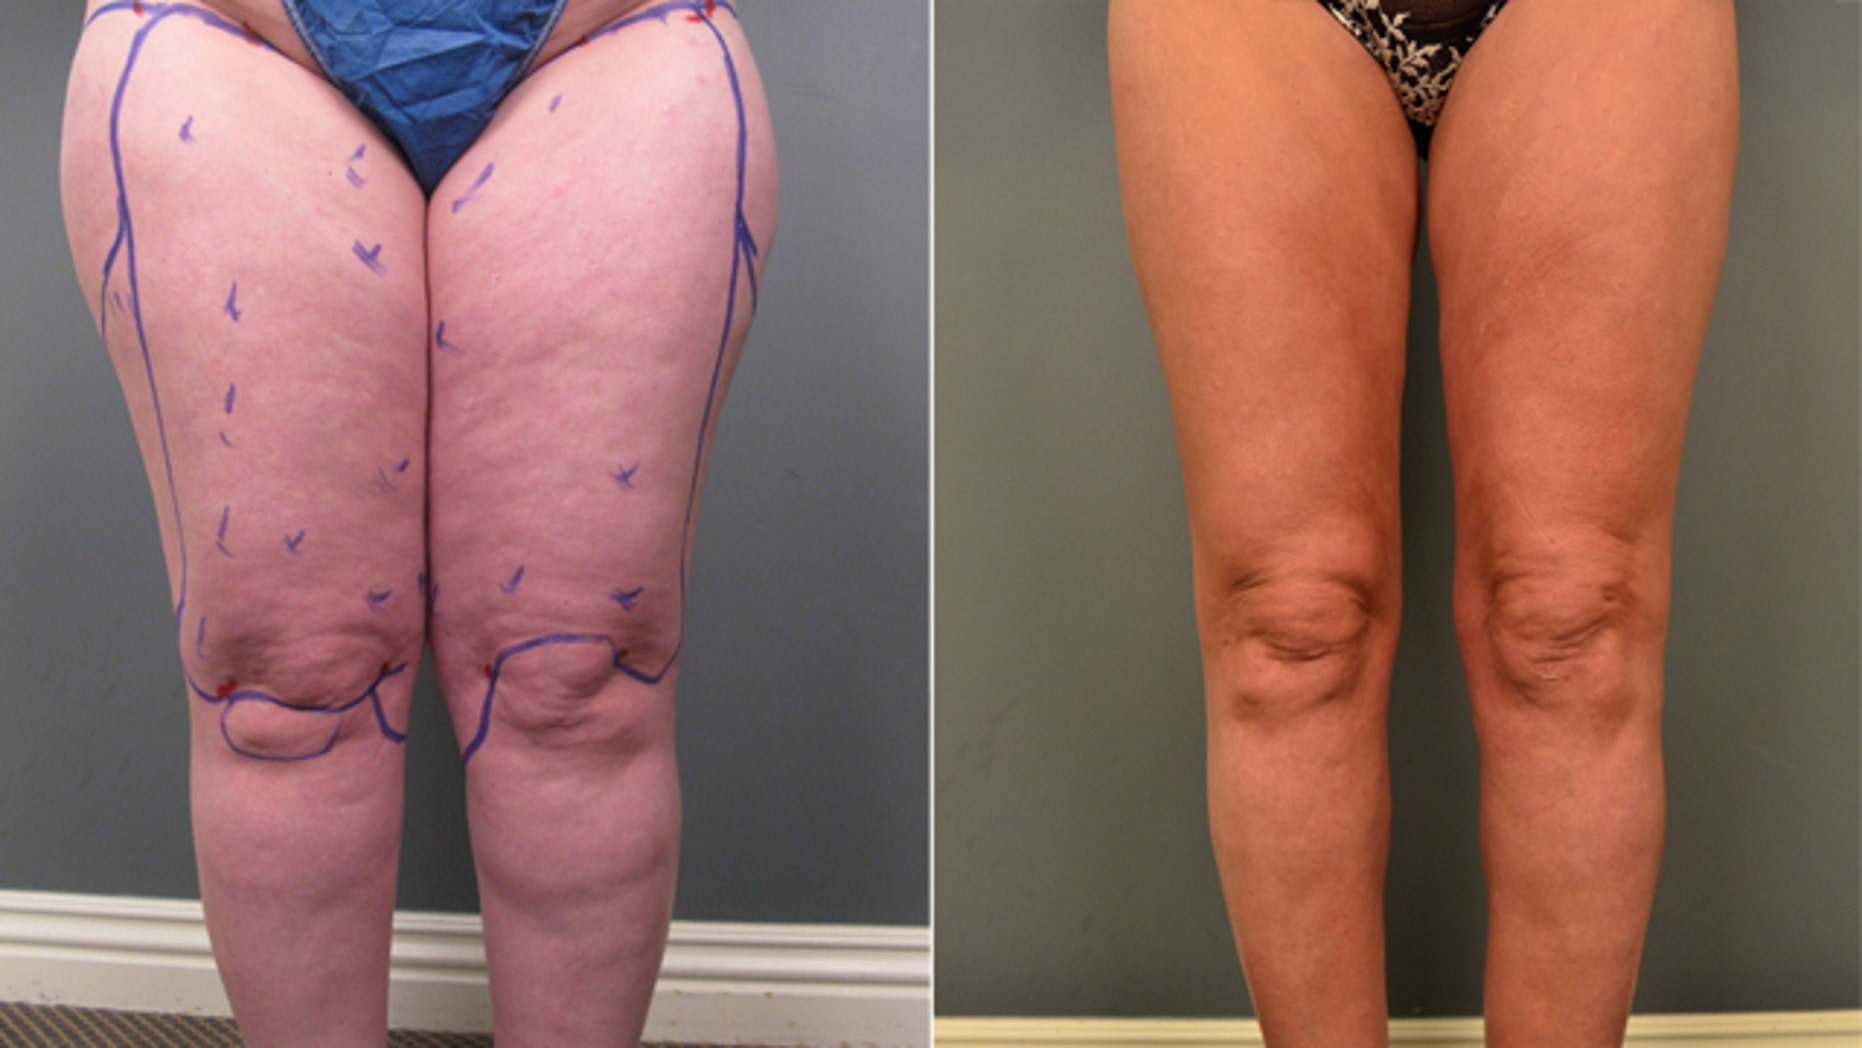 Liposuction: A surprising treatment for a painful condition